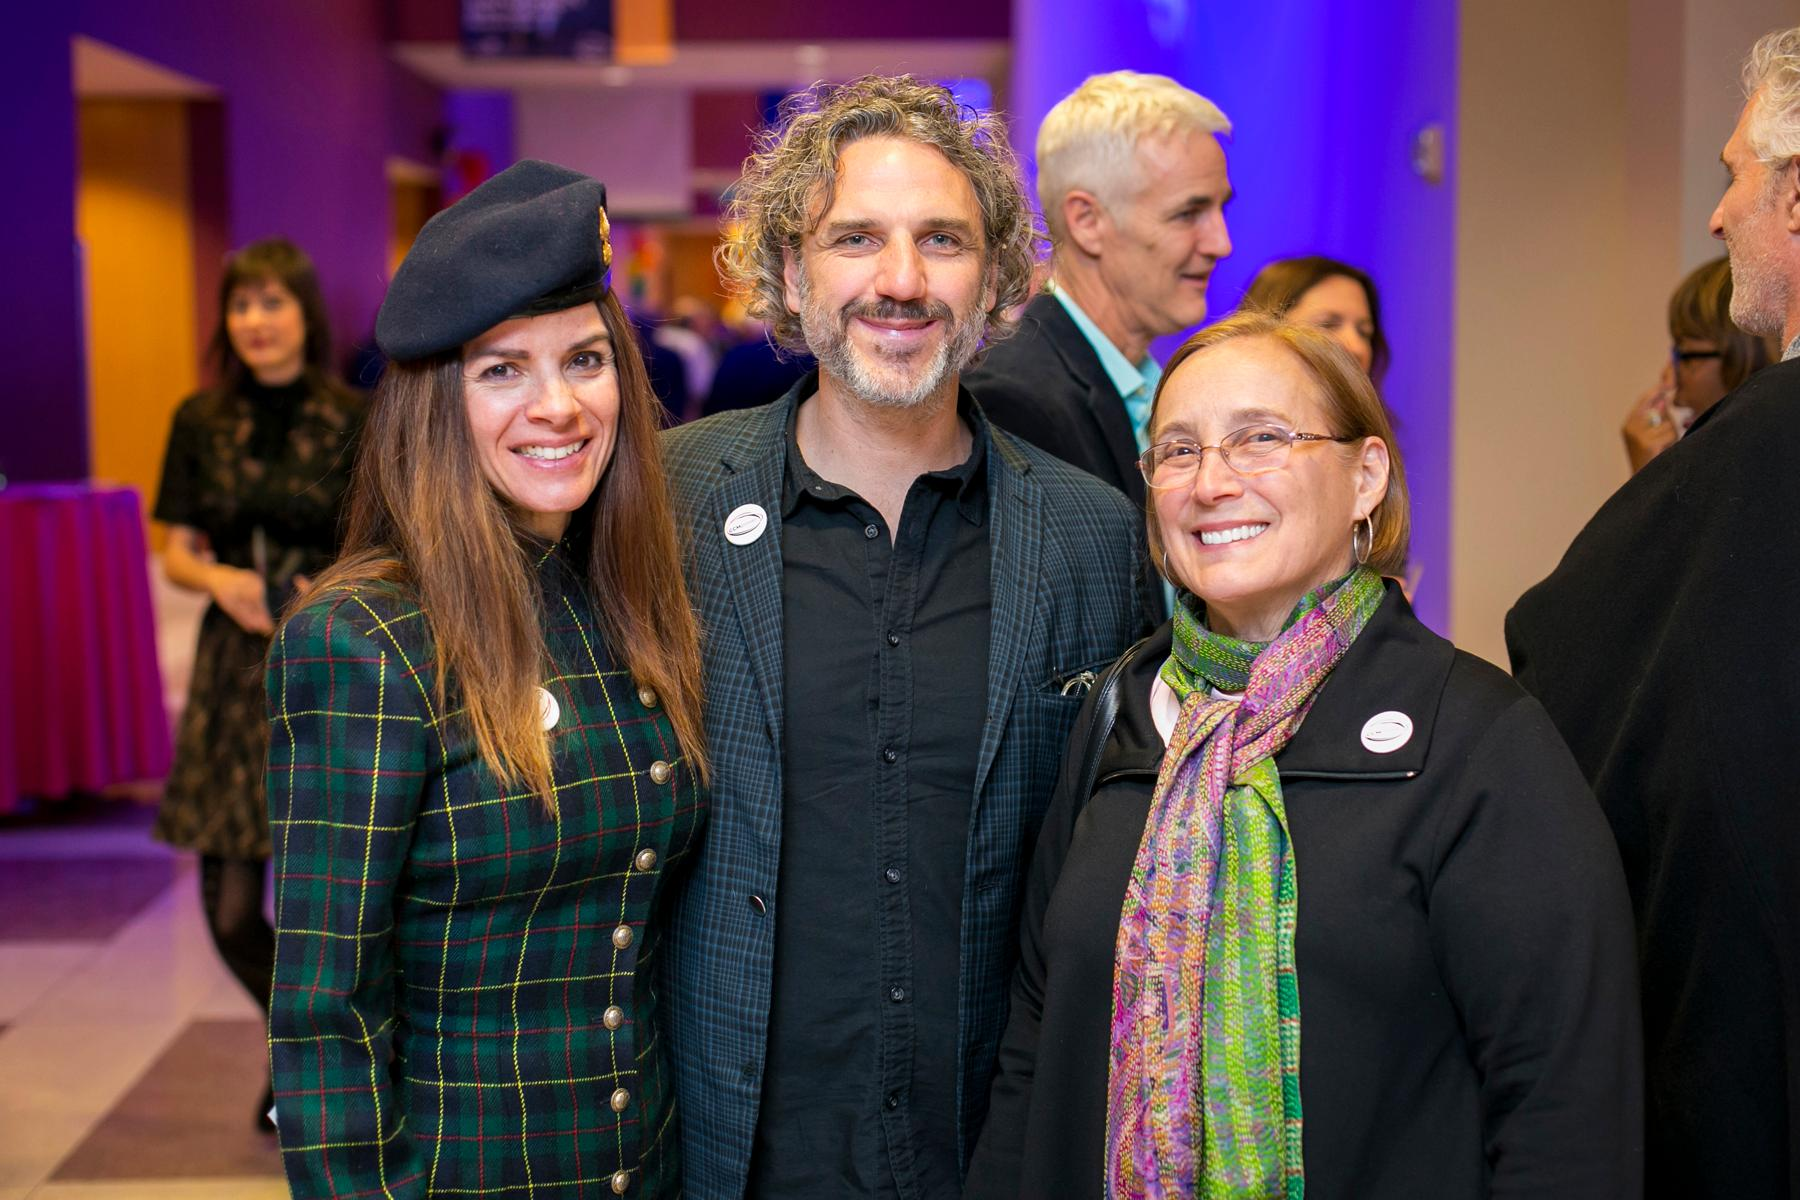 Clara Harkavy, Matt Kotlarczyk, and Jessica Baron / Image: Mike Bresnen Photography // Published: 1.20.18